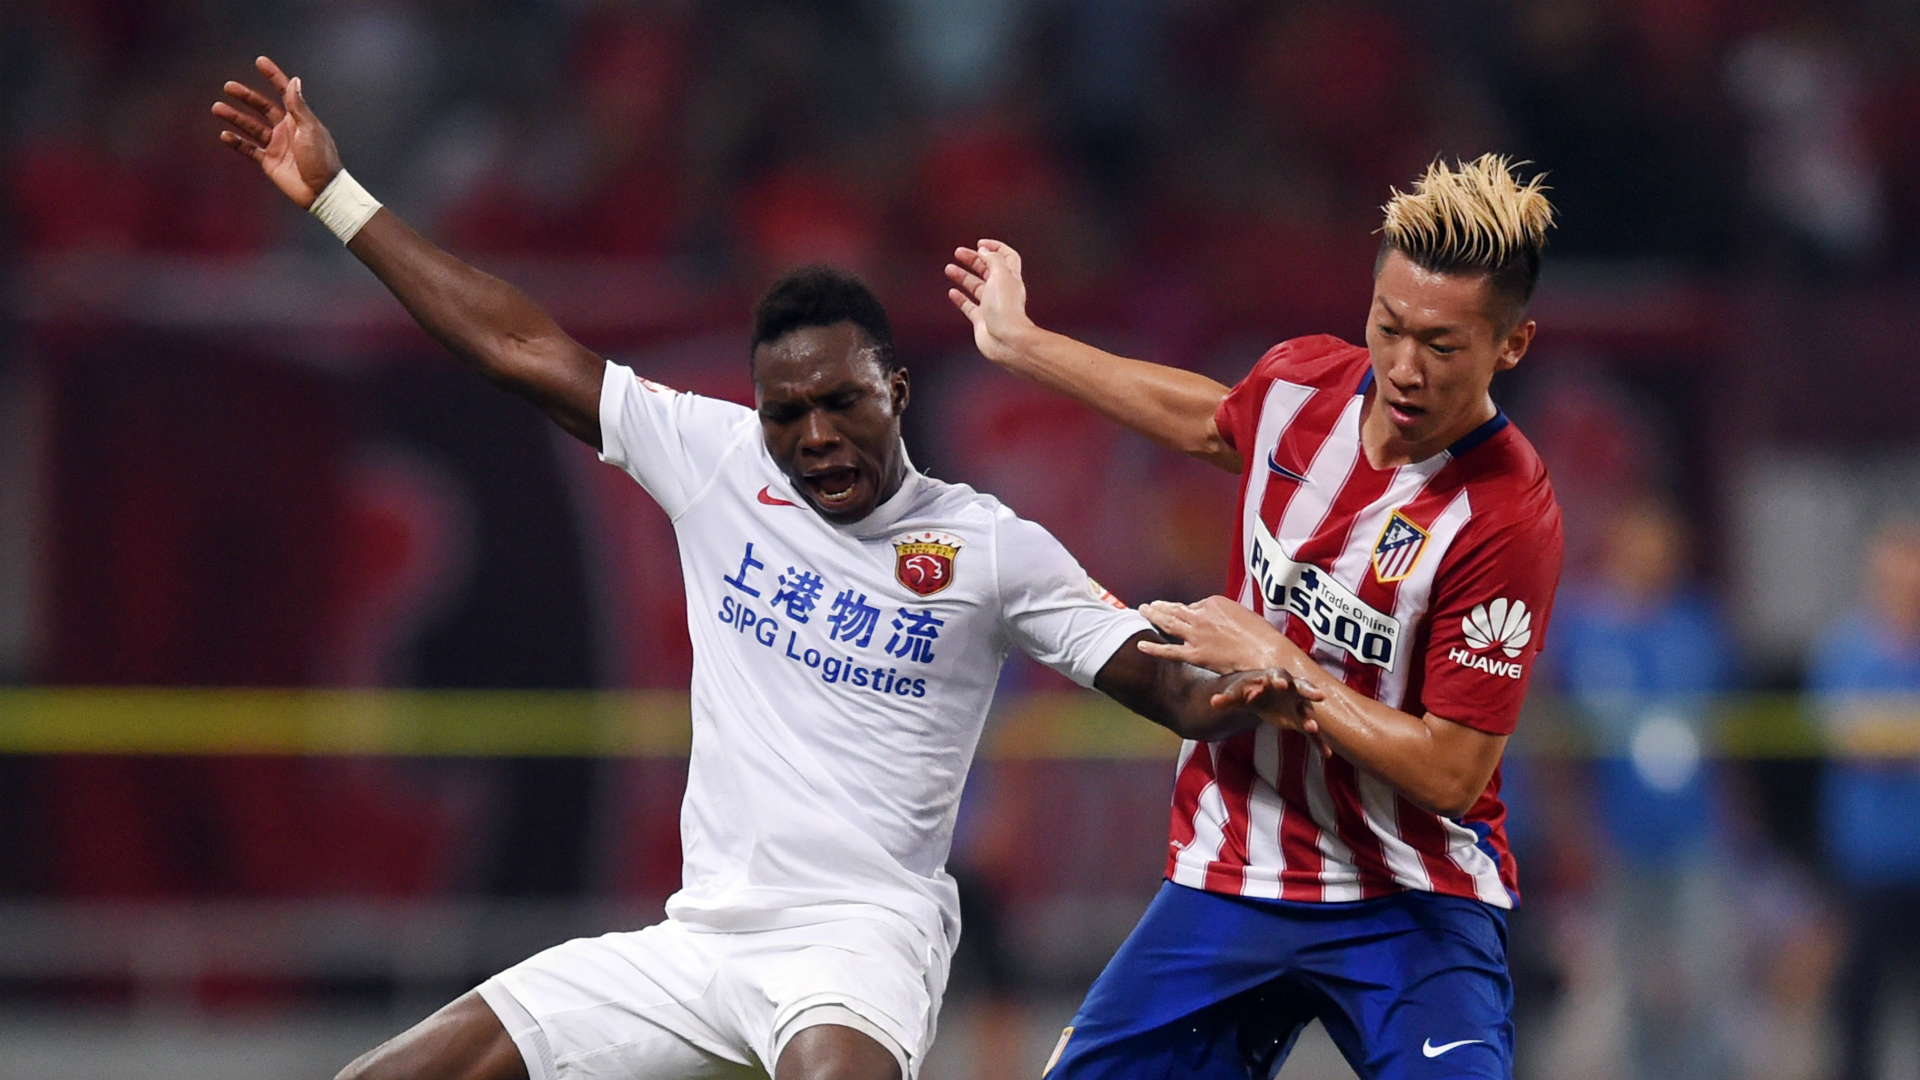 Jean Kouassi's double powers Wuhan Zall past Shijiazhuang Ever Bright